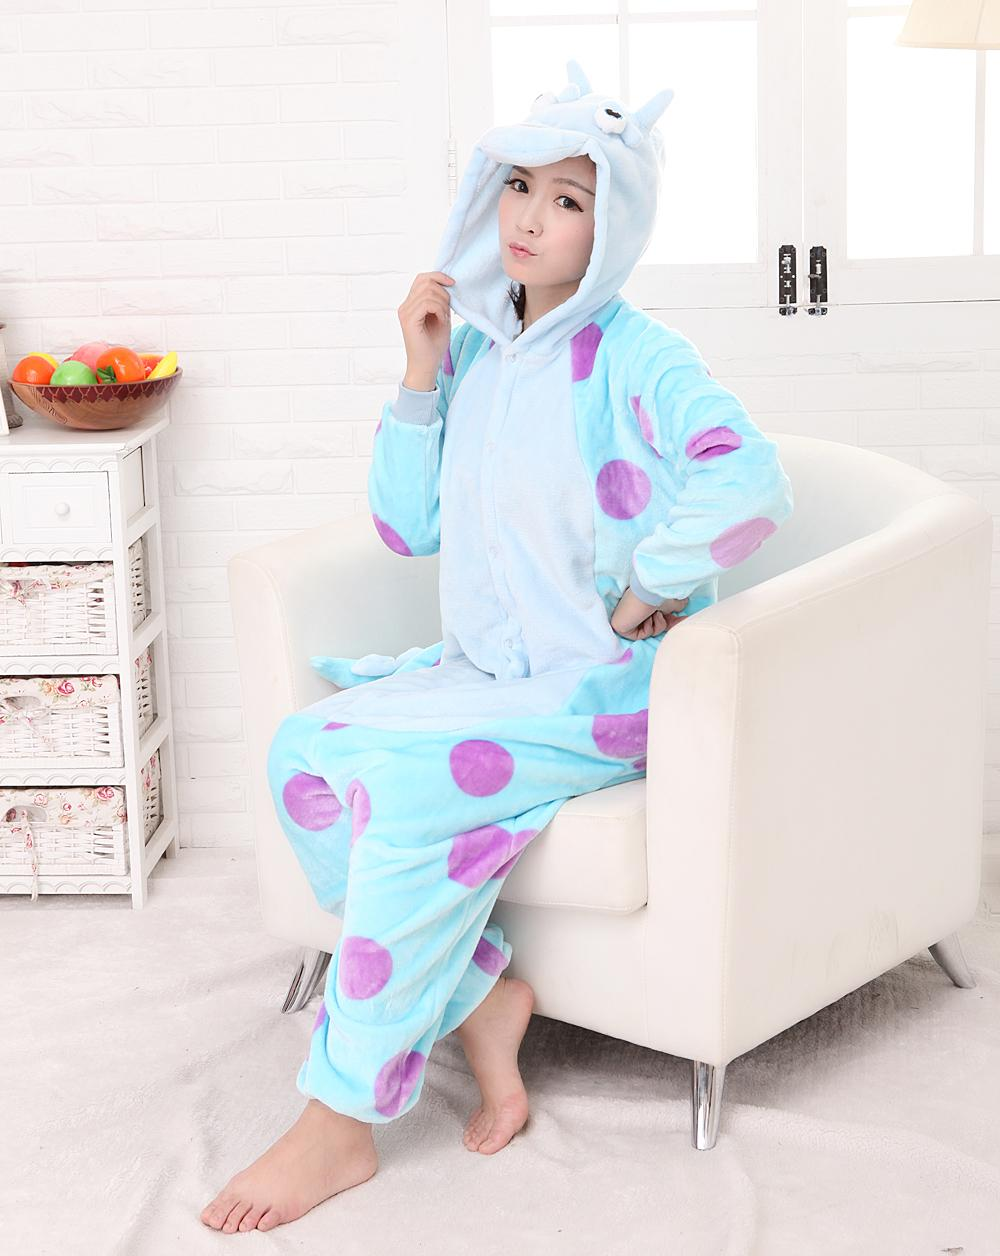 free shipping New Unisex Adult Sully Pajamas Cosplay Costume Animal Onesie Monsters University Mike Sulley SleepwearSize S M LXL